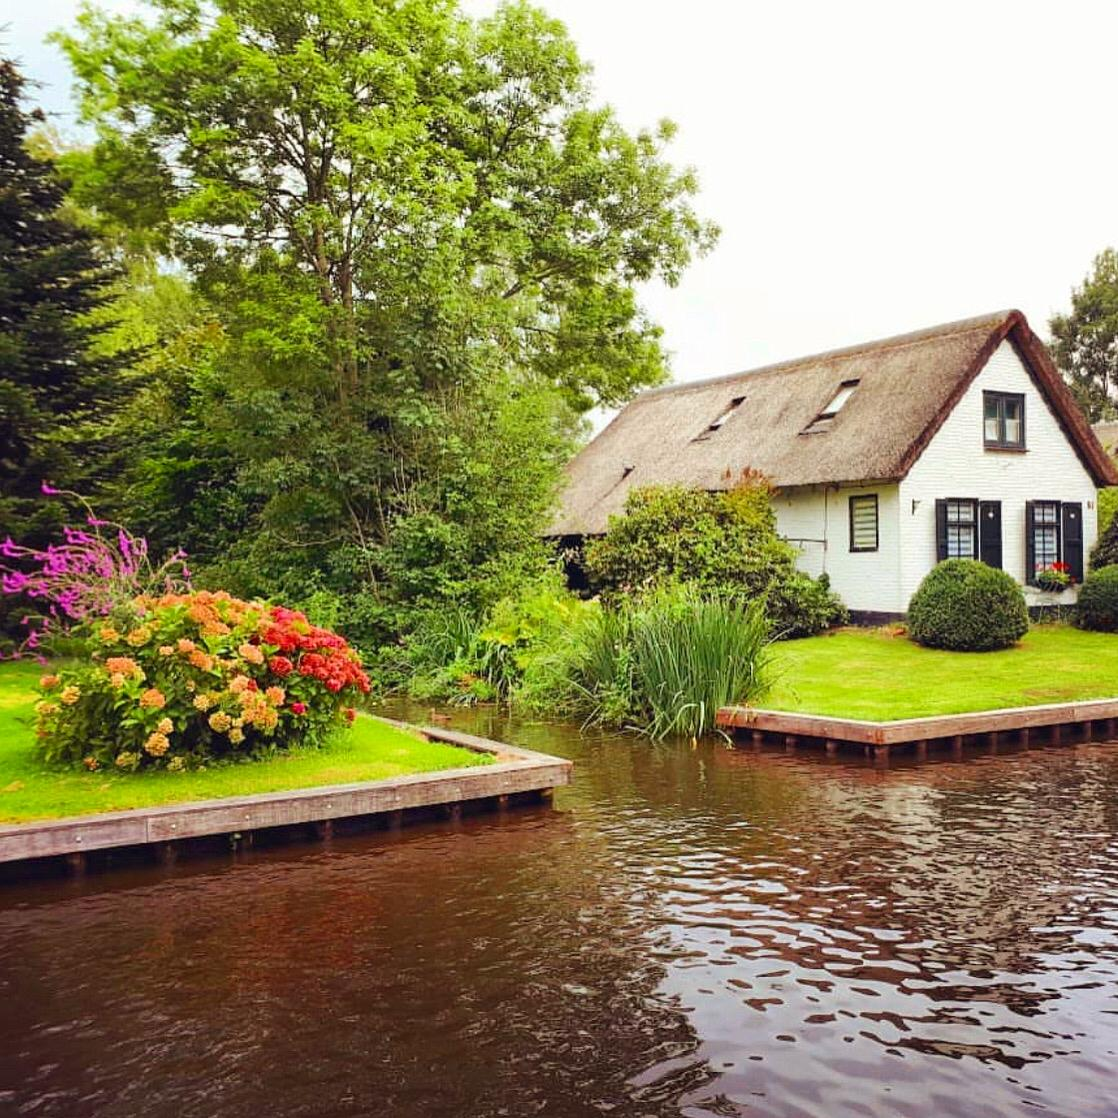 Empty waterways in Giethoorn